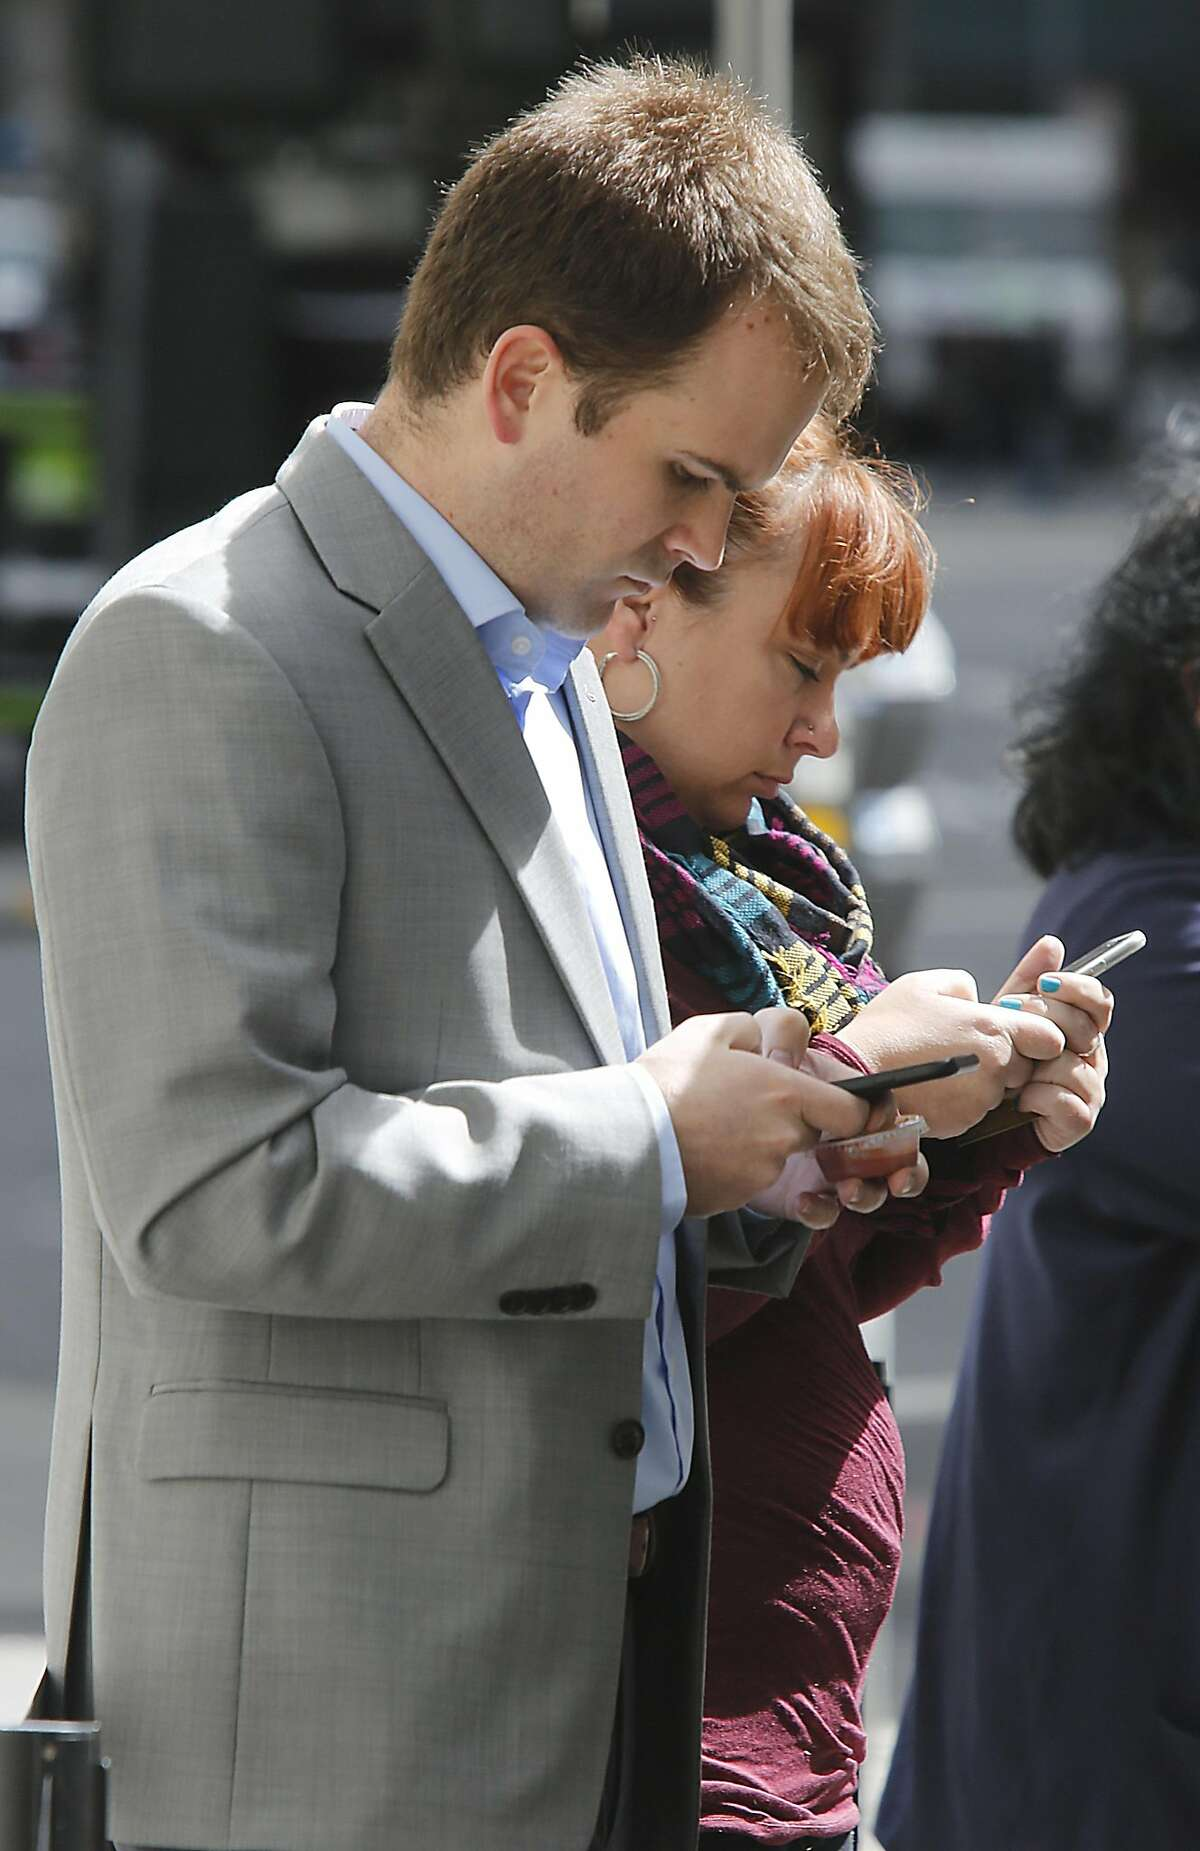 Joe Cagajeski (front) and Erica Vaughn (behind) on their phones while they wait for food from the Senior Sisig food truck in the financial district in San Francisco, California, on Monday, April 6, 2015.